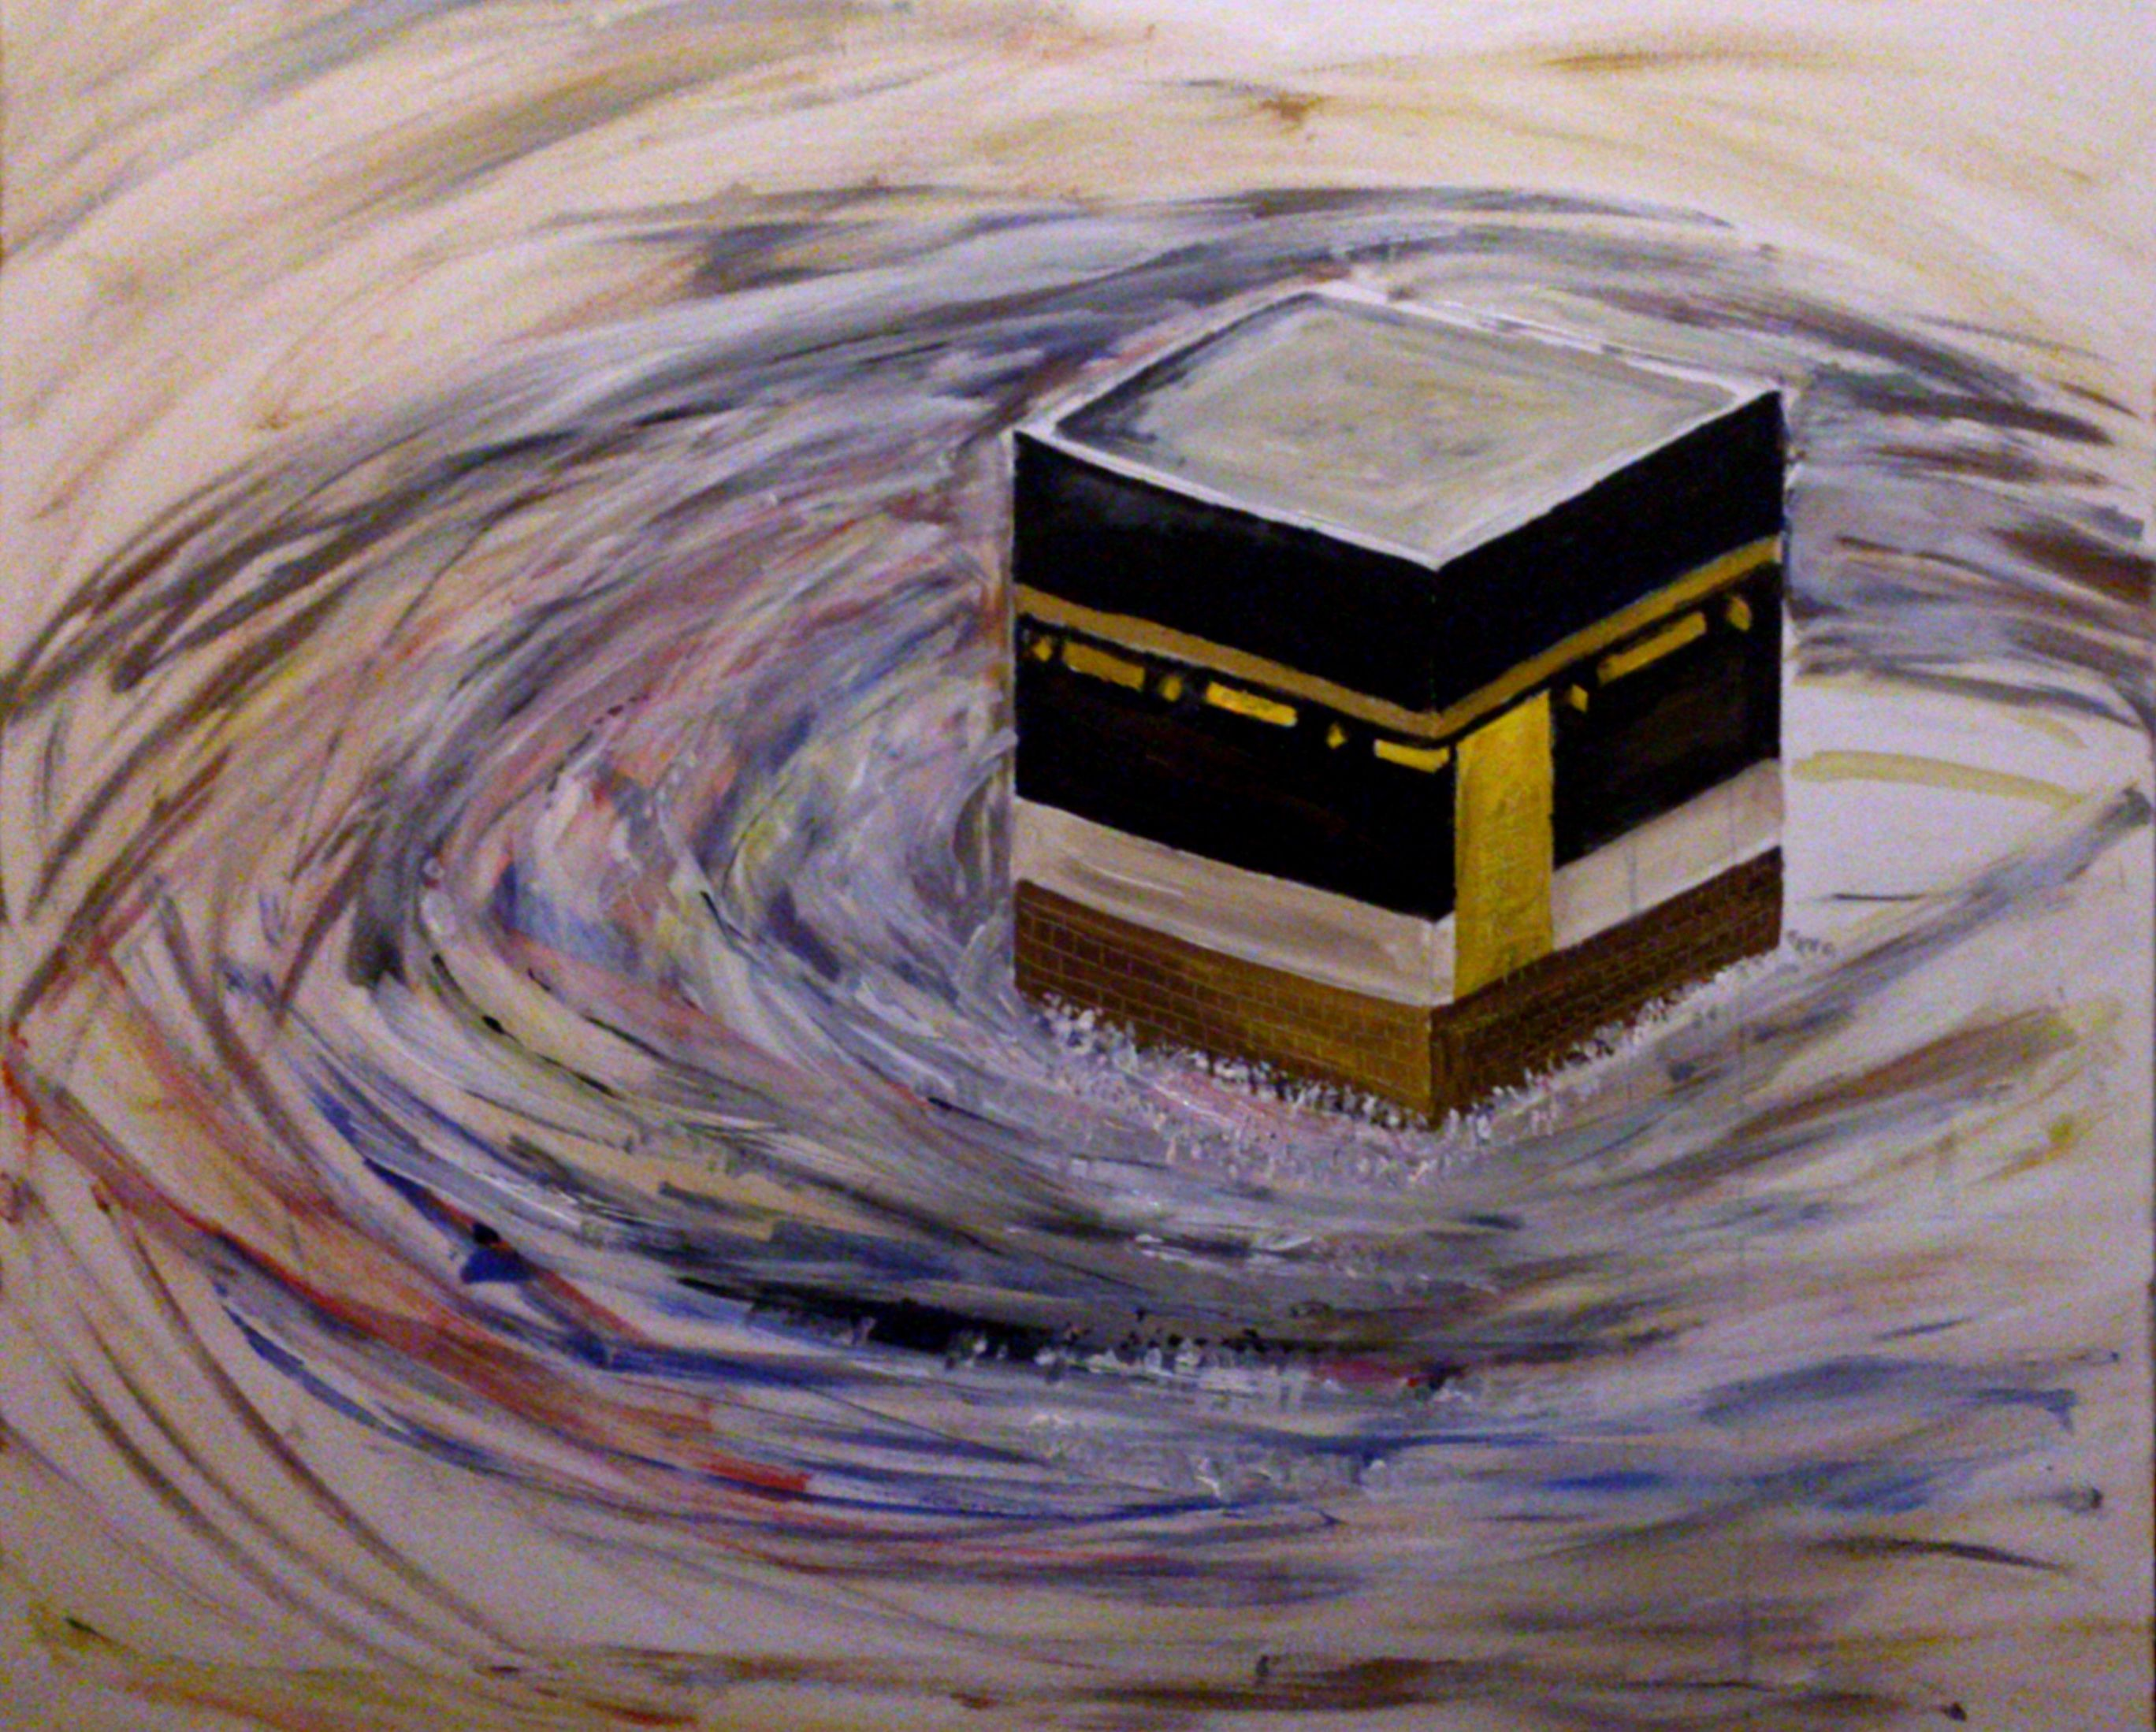 Holy Kaaba Holly Kaaba In Saudia Arabia Painted On Chunky Big Canvas Very Colorful And Vibrant Oil Paint With Delicate Touch Of Art Painting Islamic Art